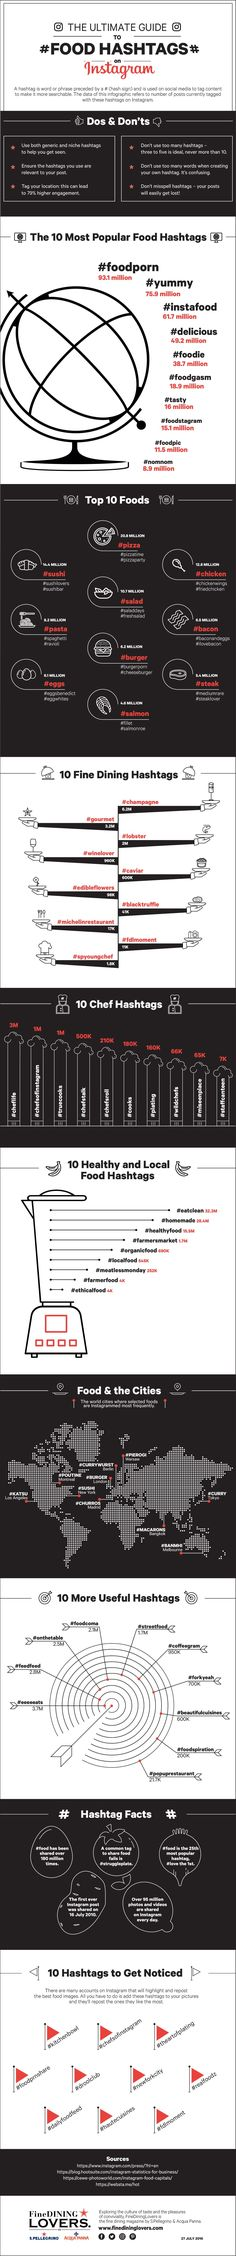 Food Hashtag Guide | Infographic by FineDiningLovers.com                                                                                                                                                                                 Mais